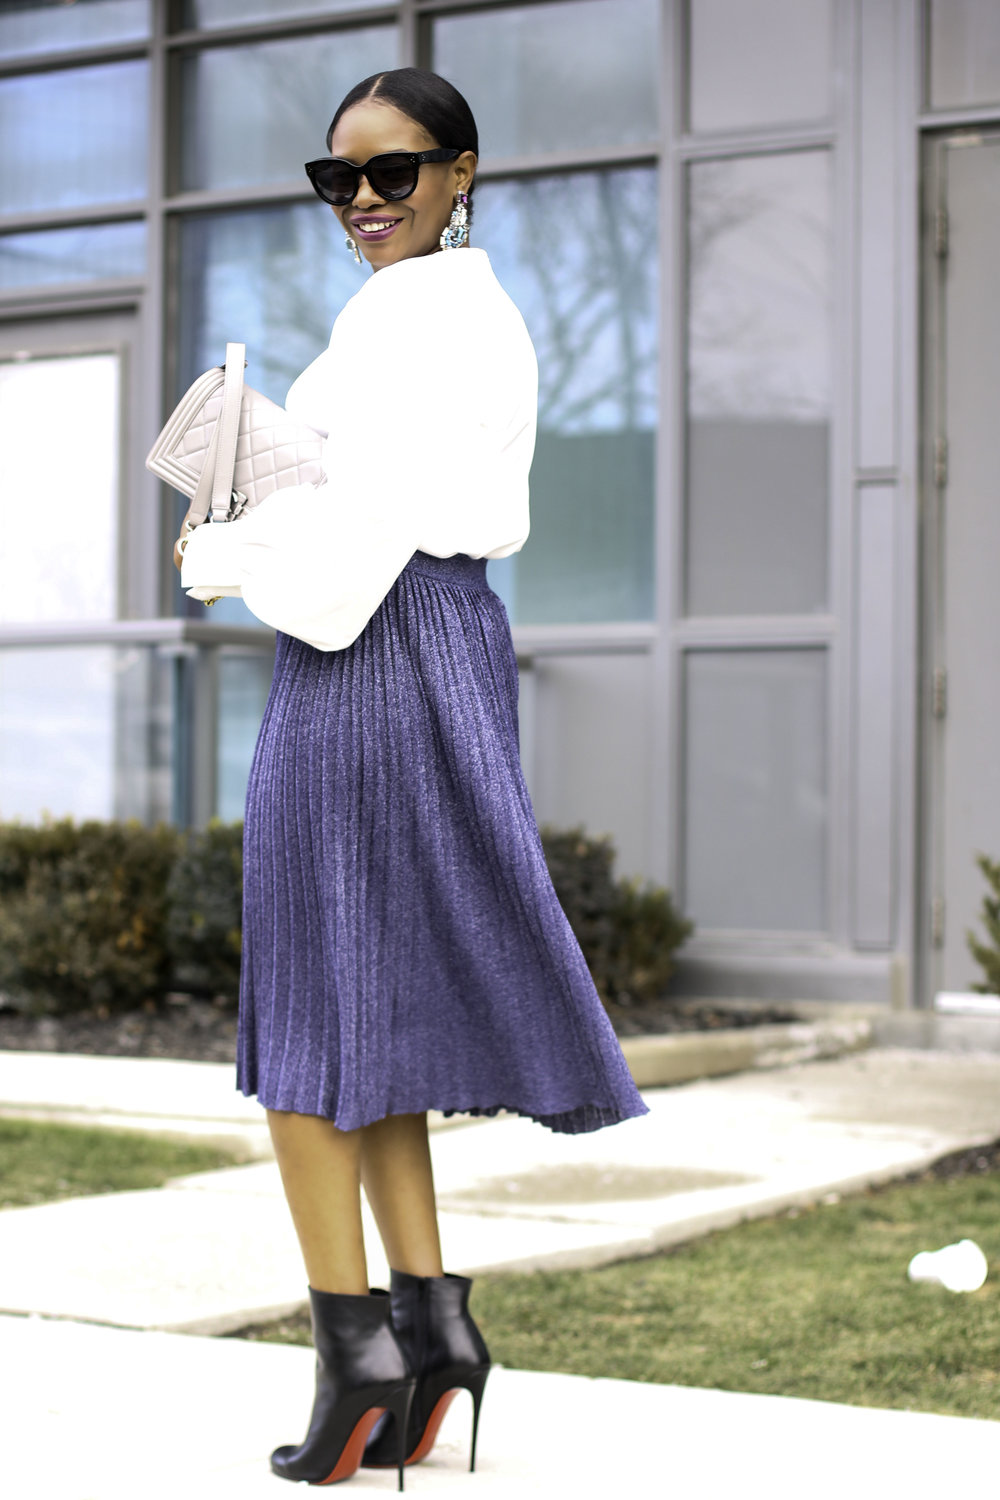 FASHION BLOGGER IN PLEATED SKIRT.jpg